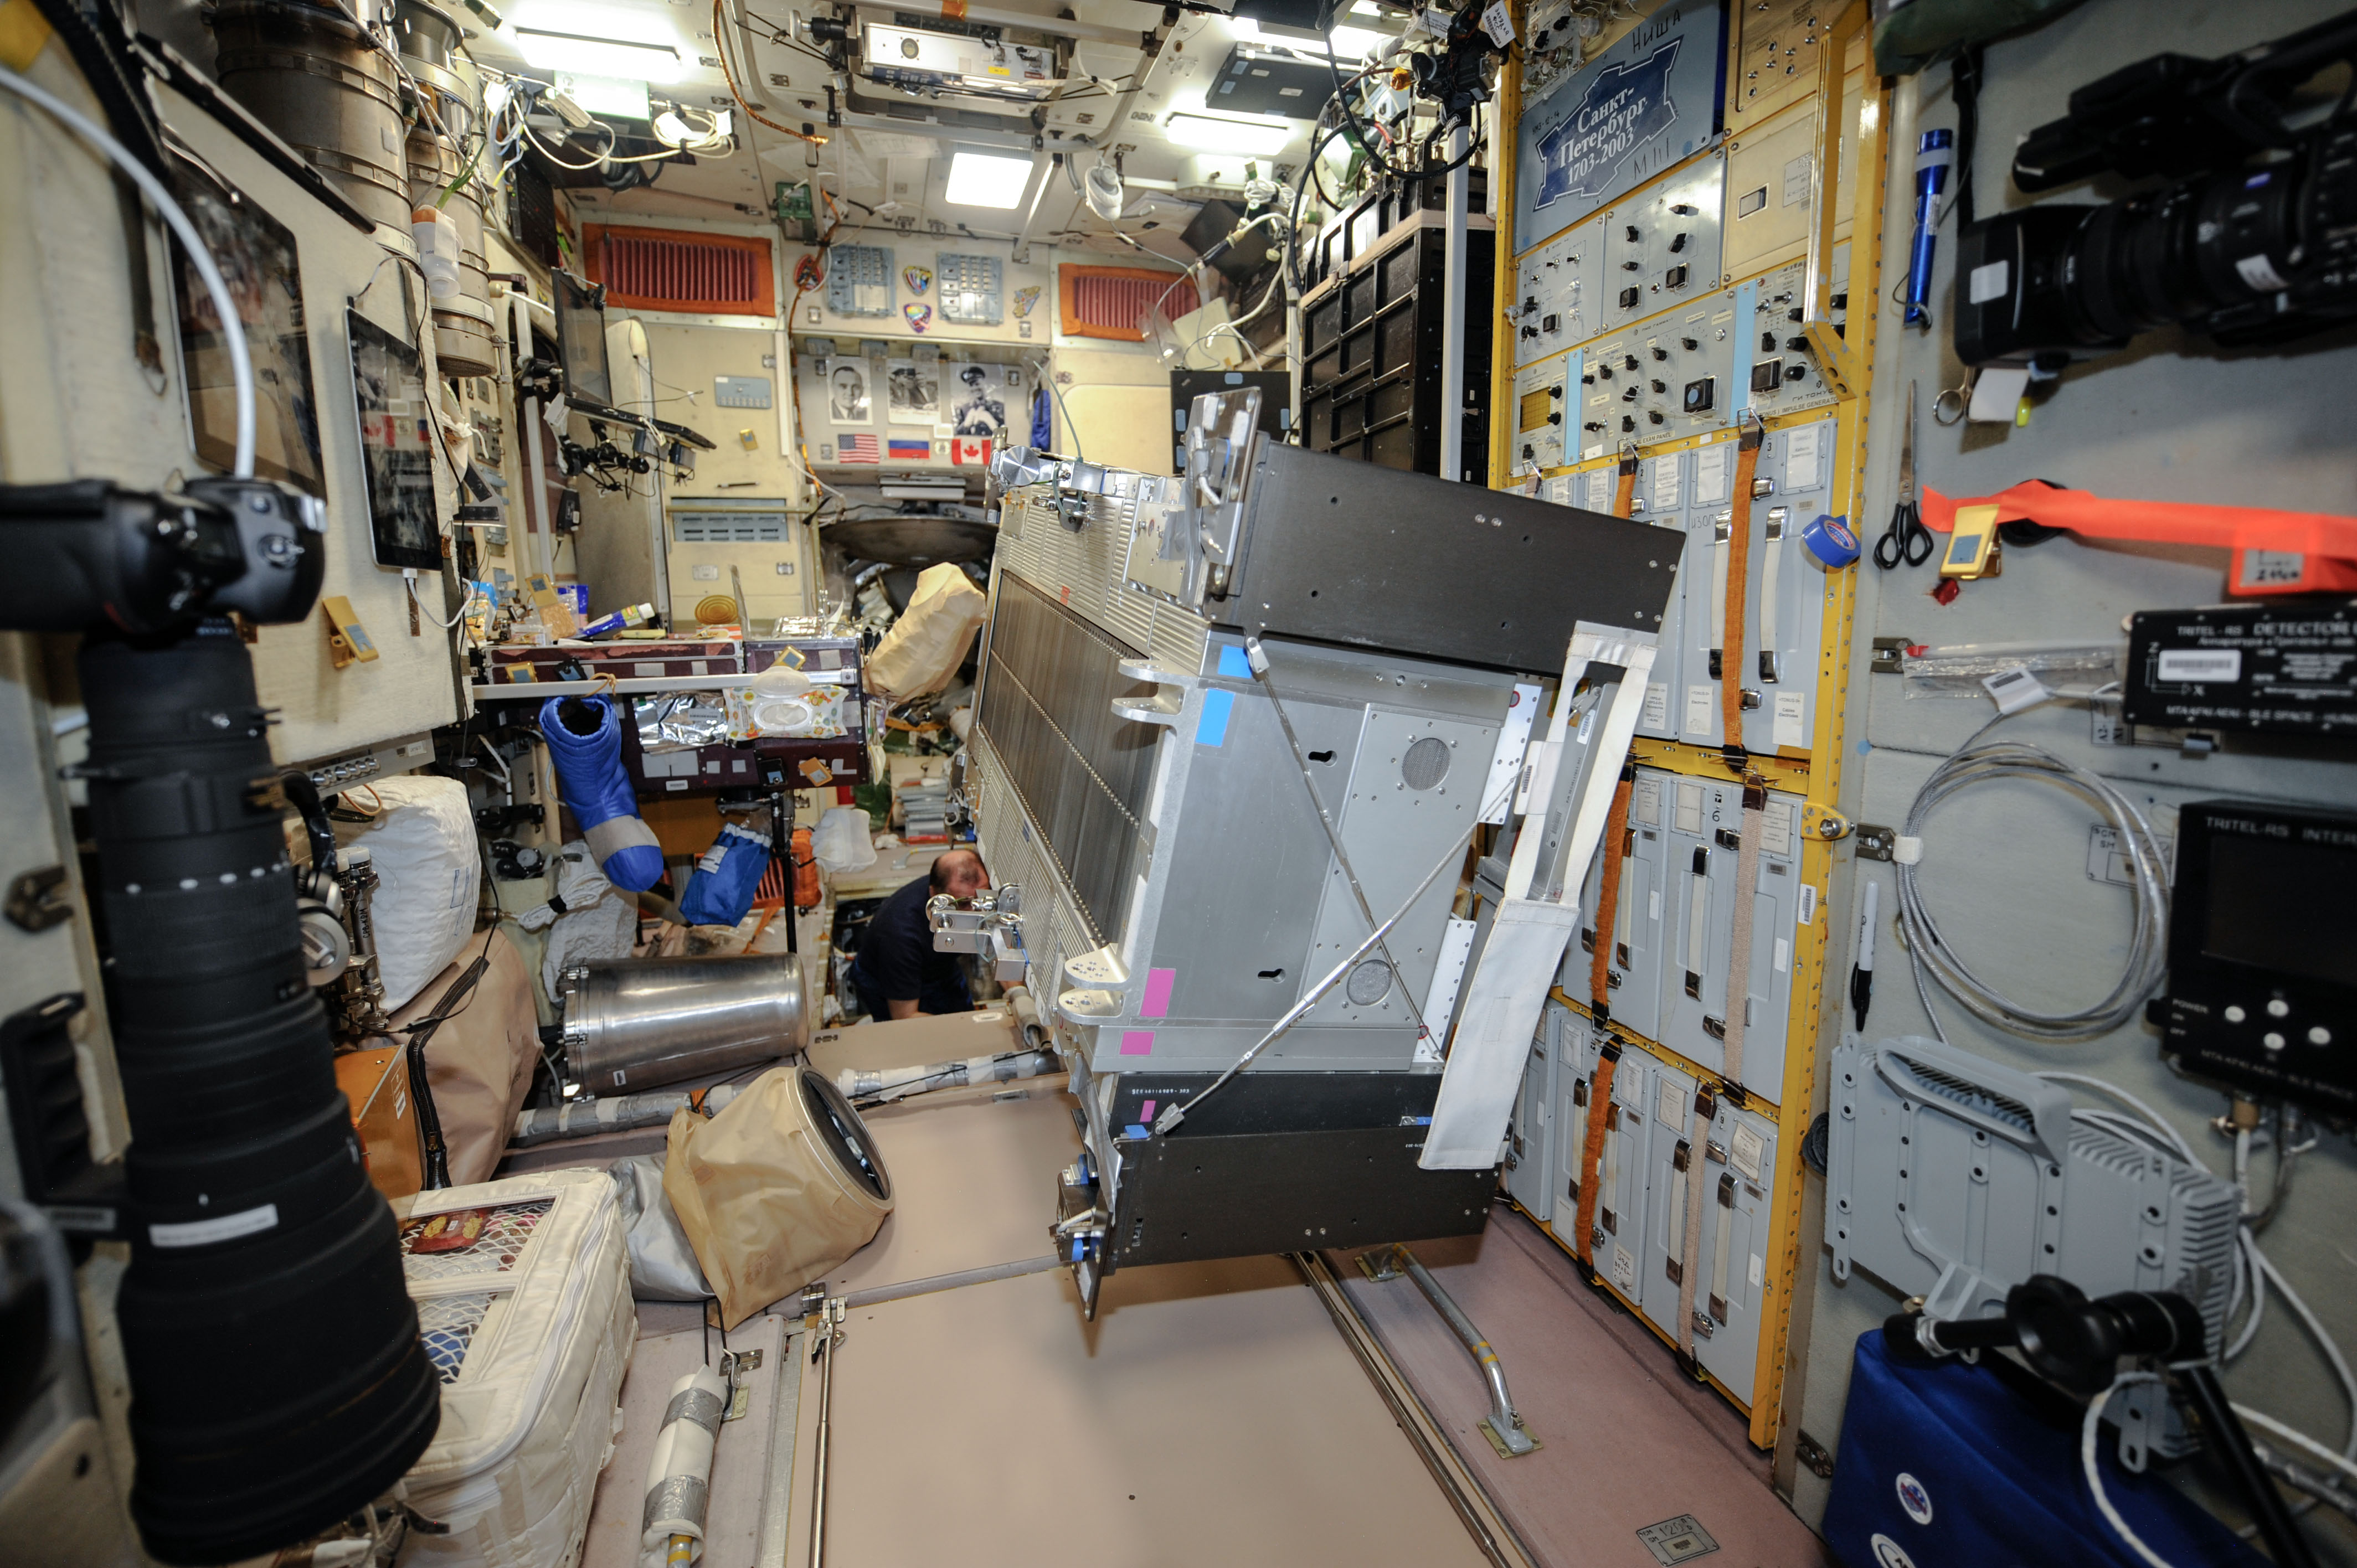 inside space station bed - photo #43